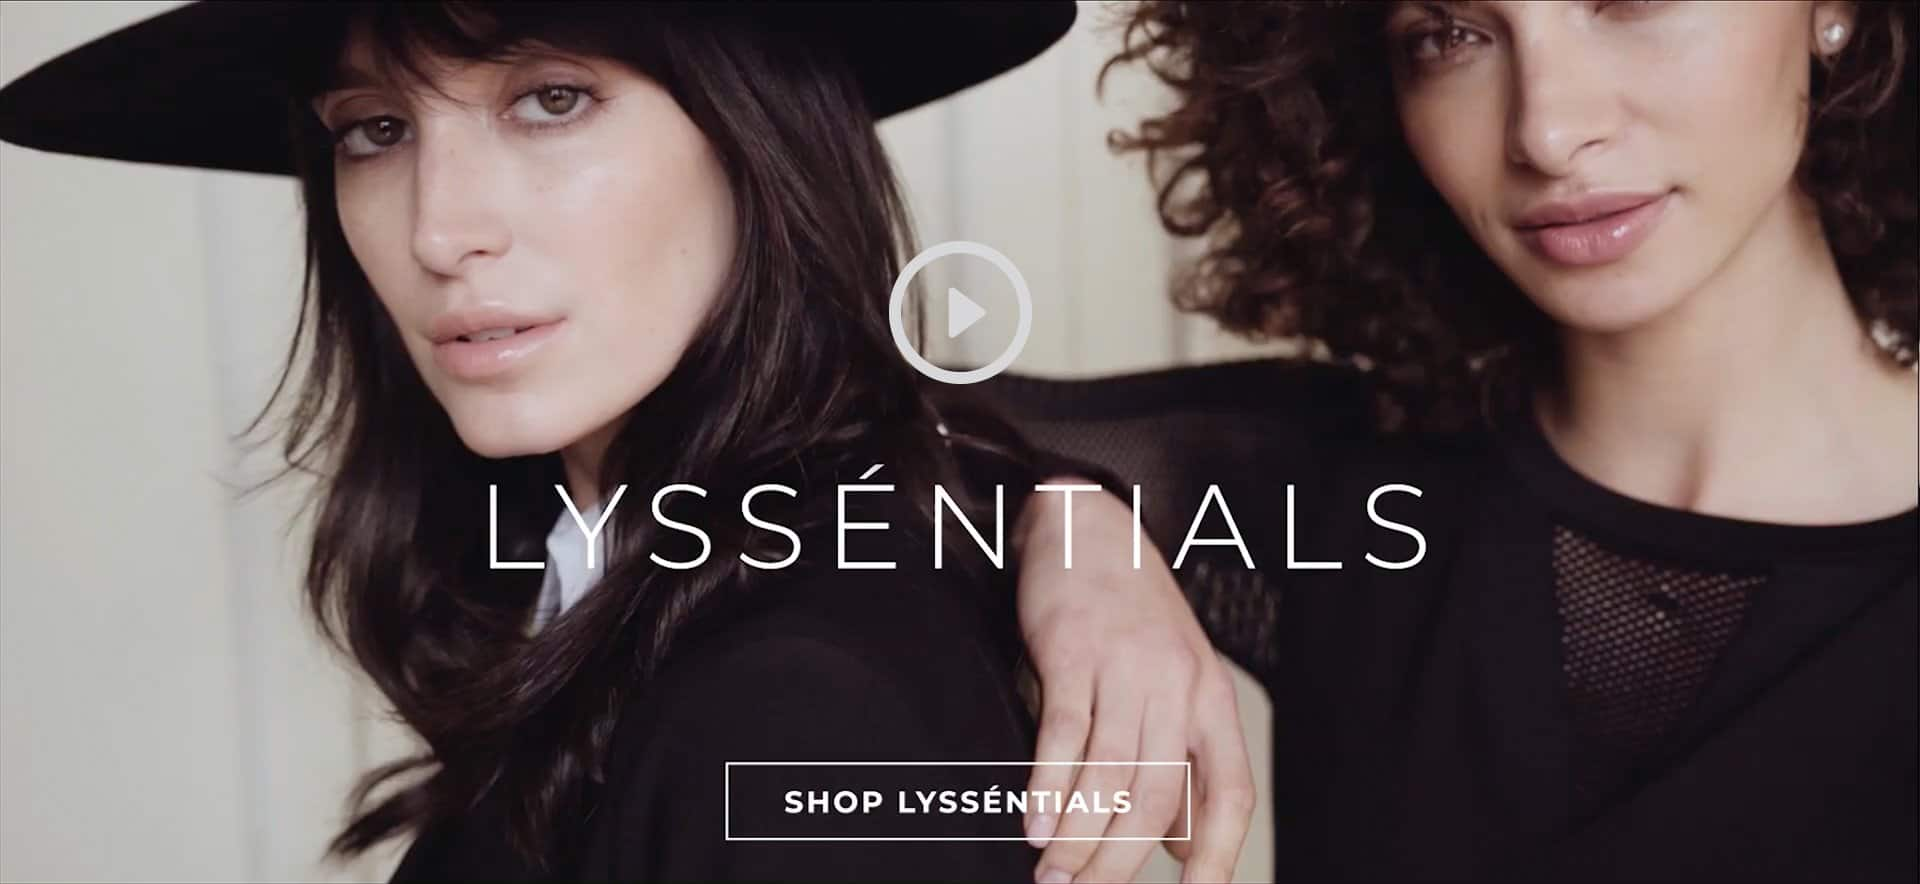 Lysse.com Lysse` Promo code for 25% and %15 promo codes